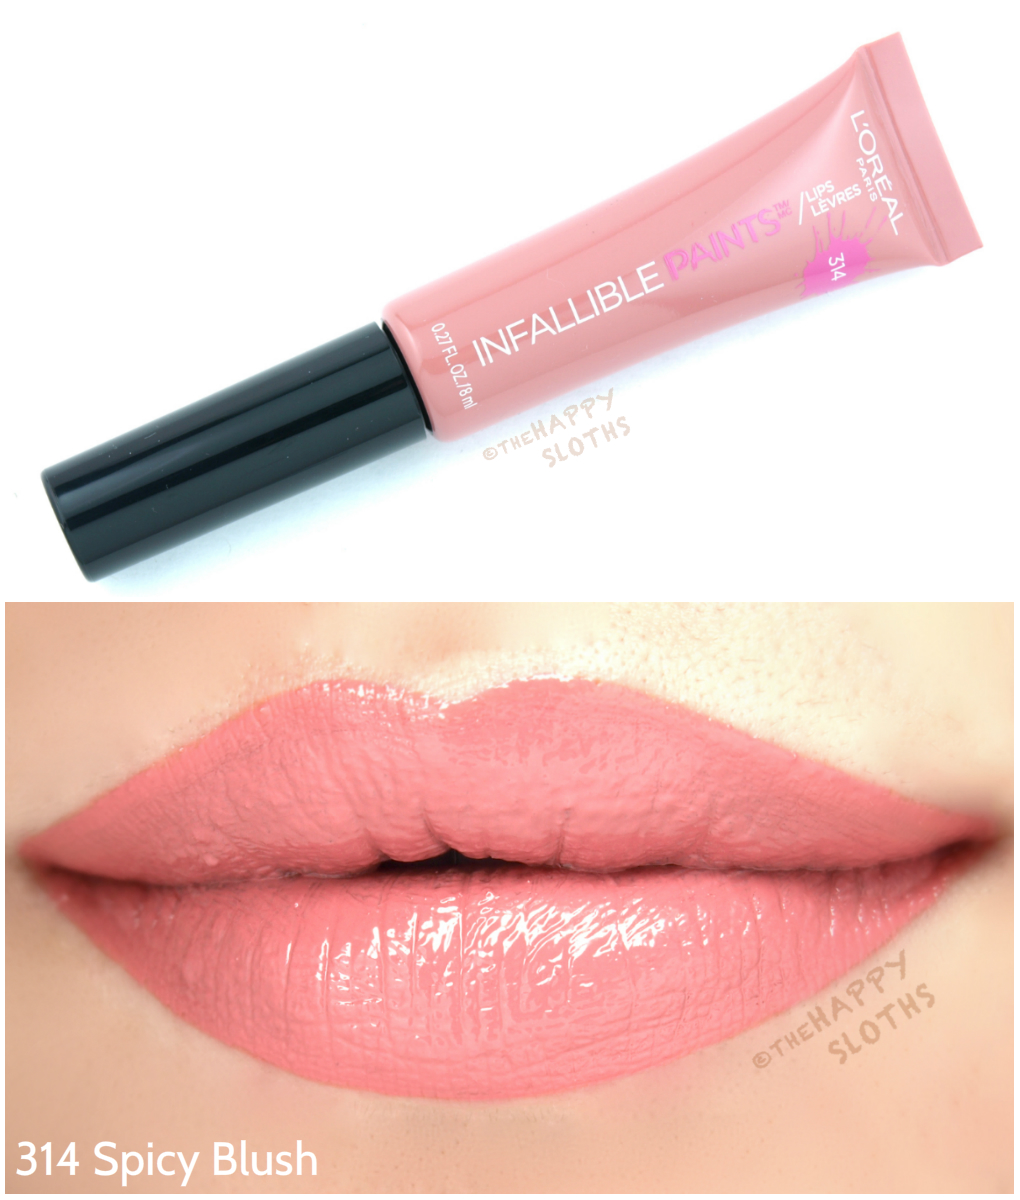 L'Oreal Infallible Lip Paints 314 Spicy Blush